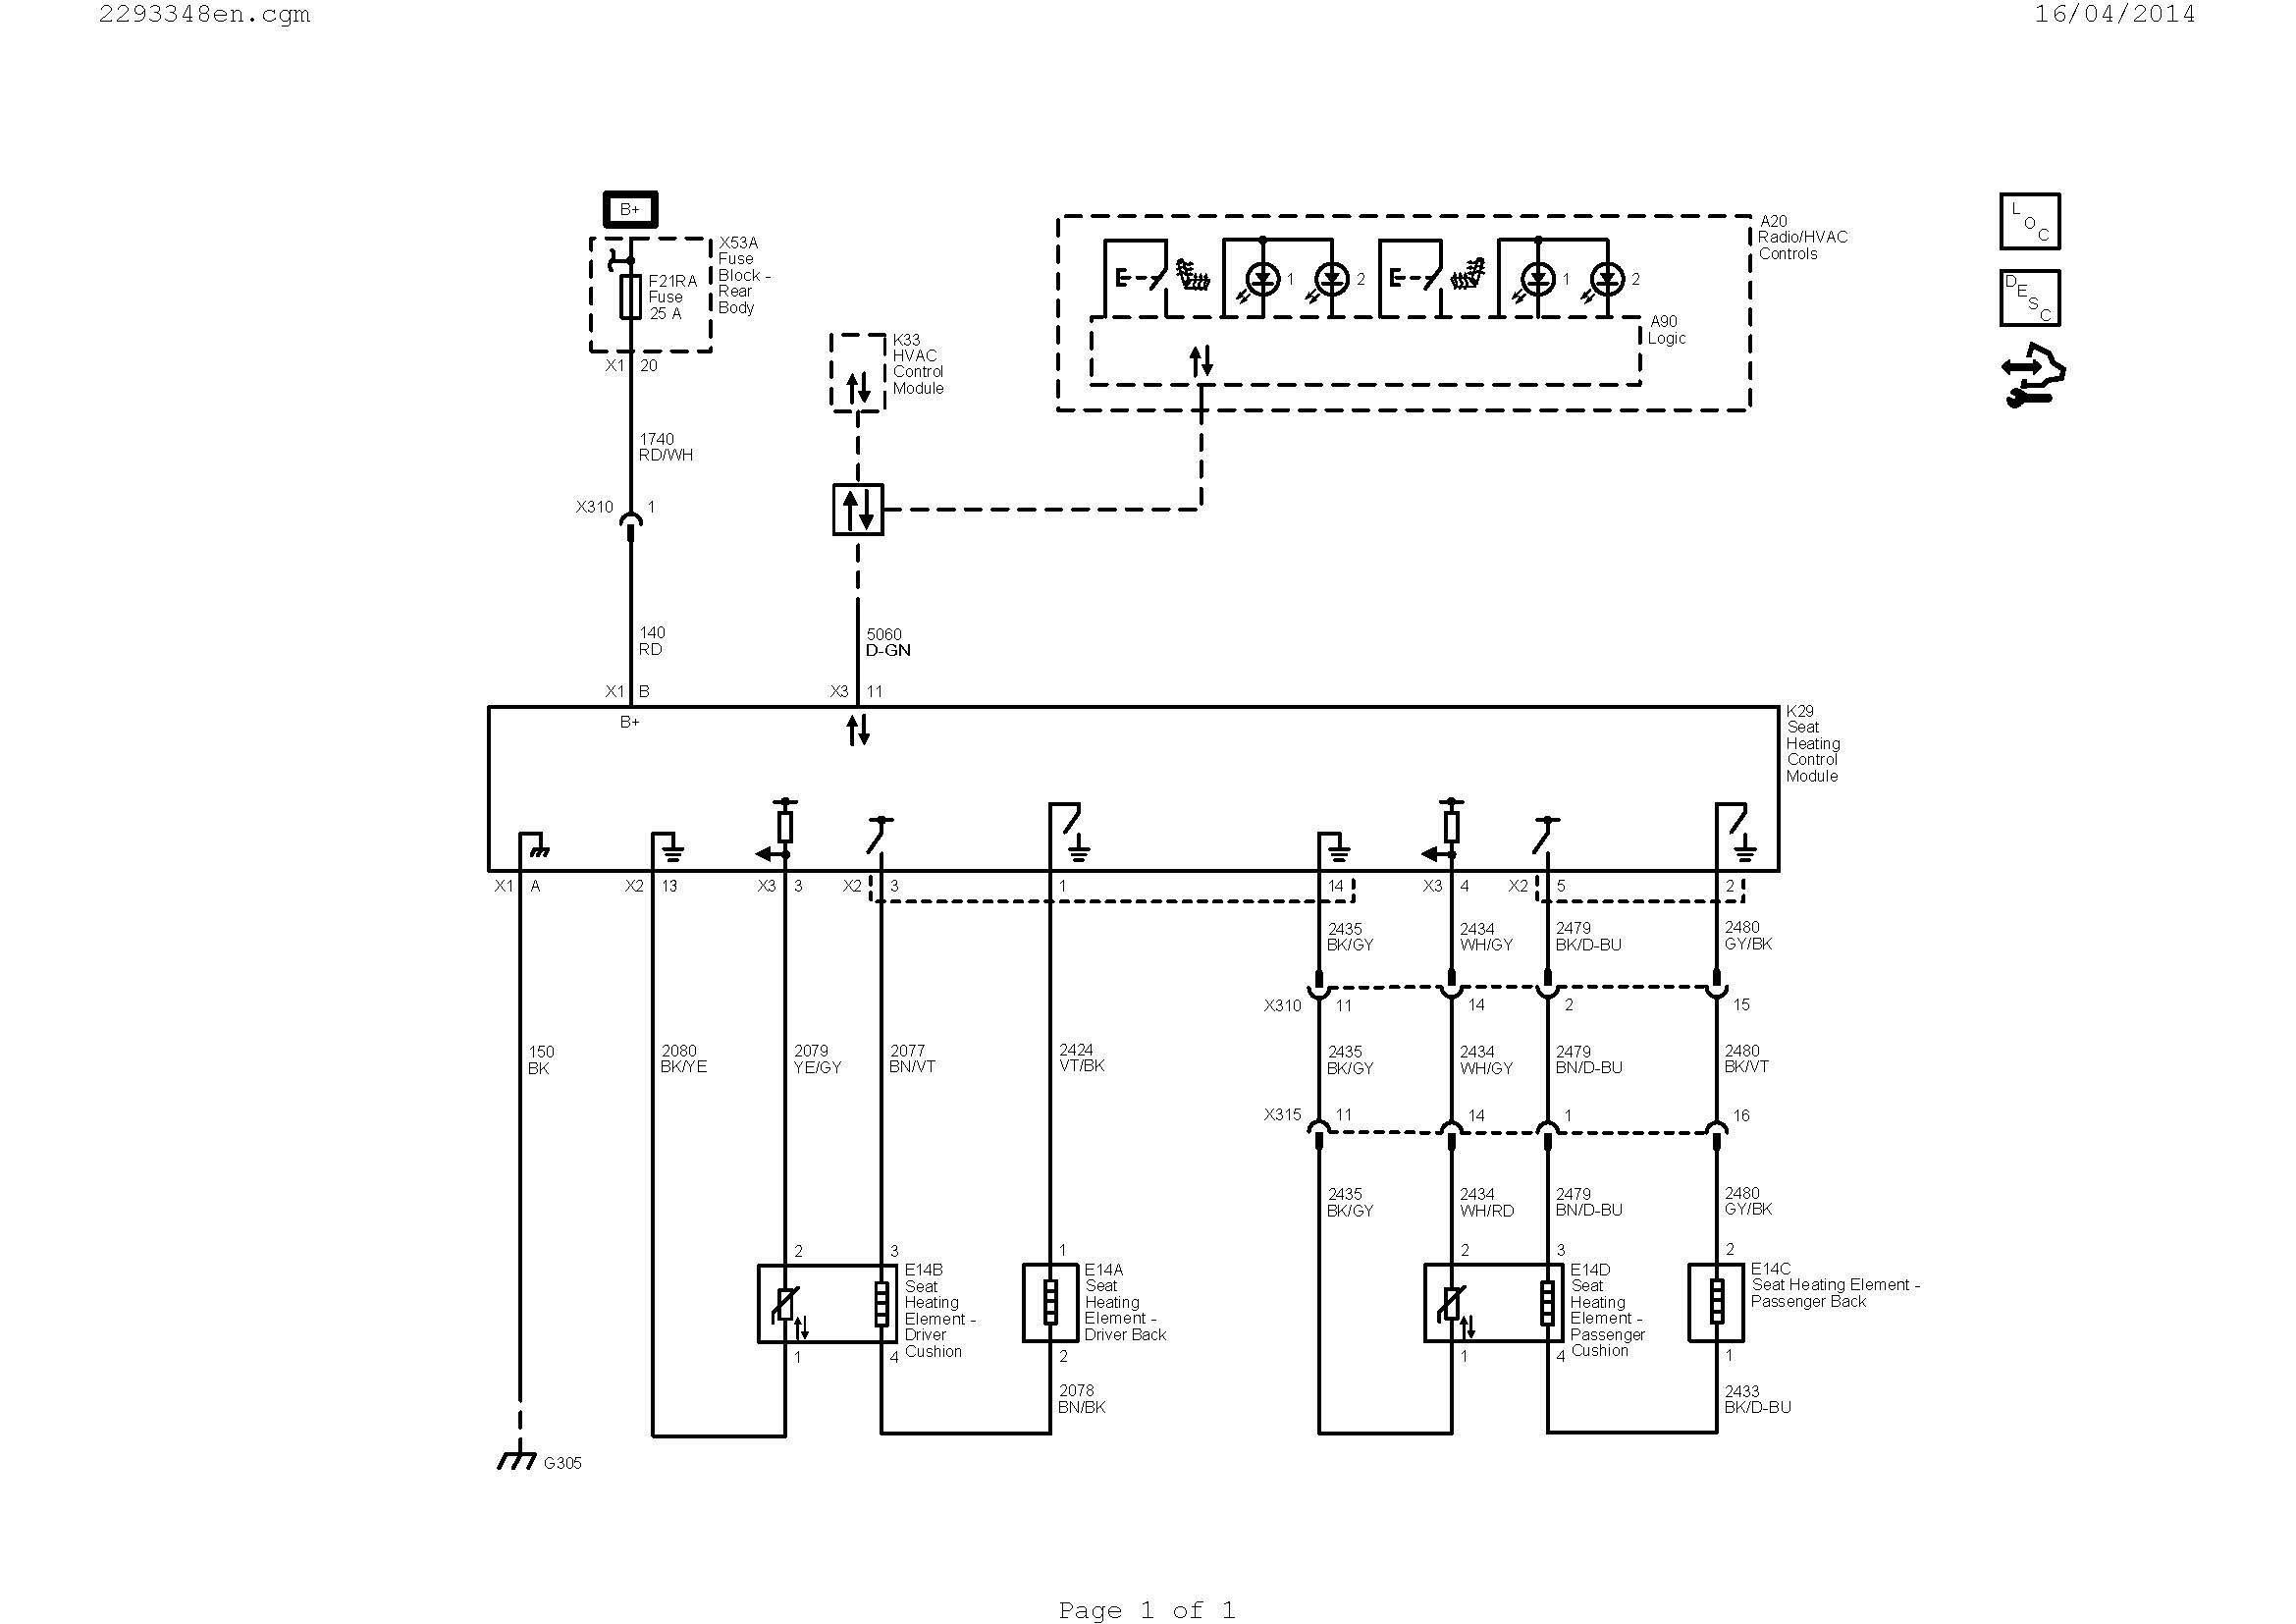 residential wiring diagram software Collection-hvac wiring diagram software Collection Guitar Cable Wiring Diagram Valid Wiring Diagram Guitar Fresh Hvac DOWNLOAD Wiring Diagram 14-k